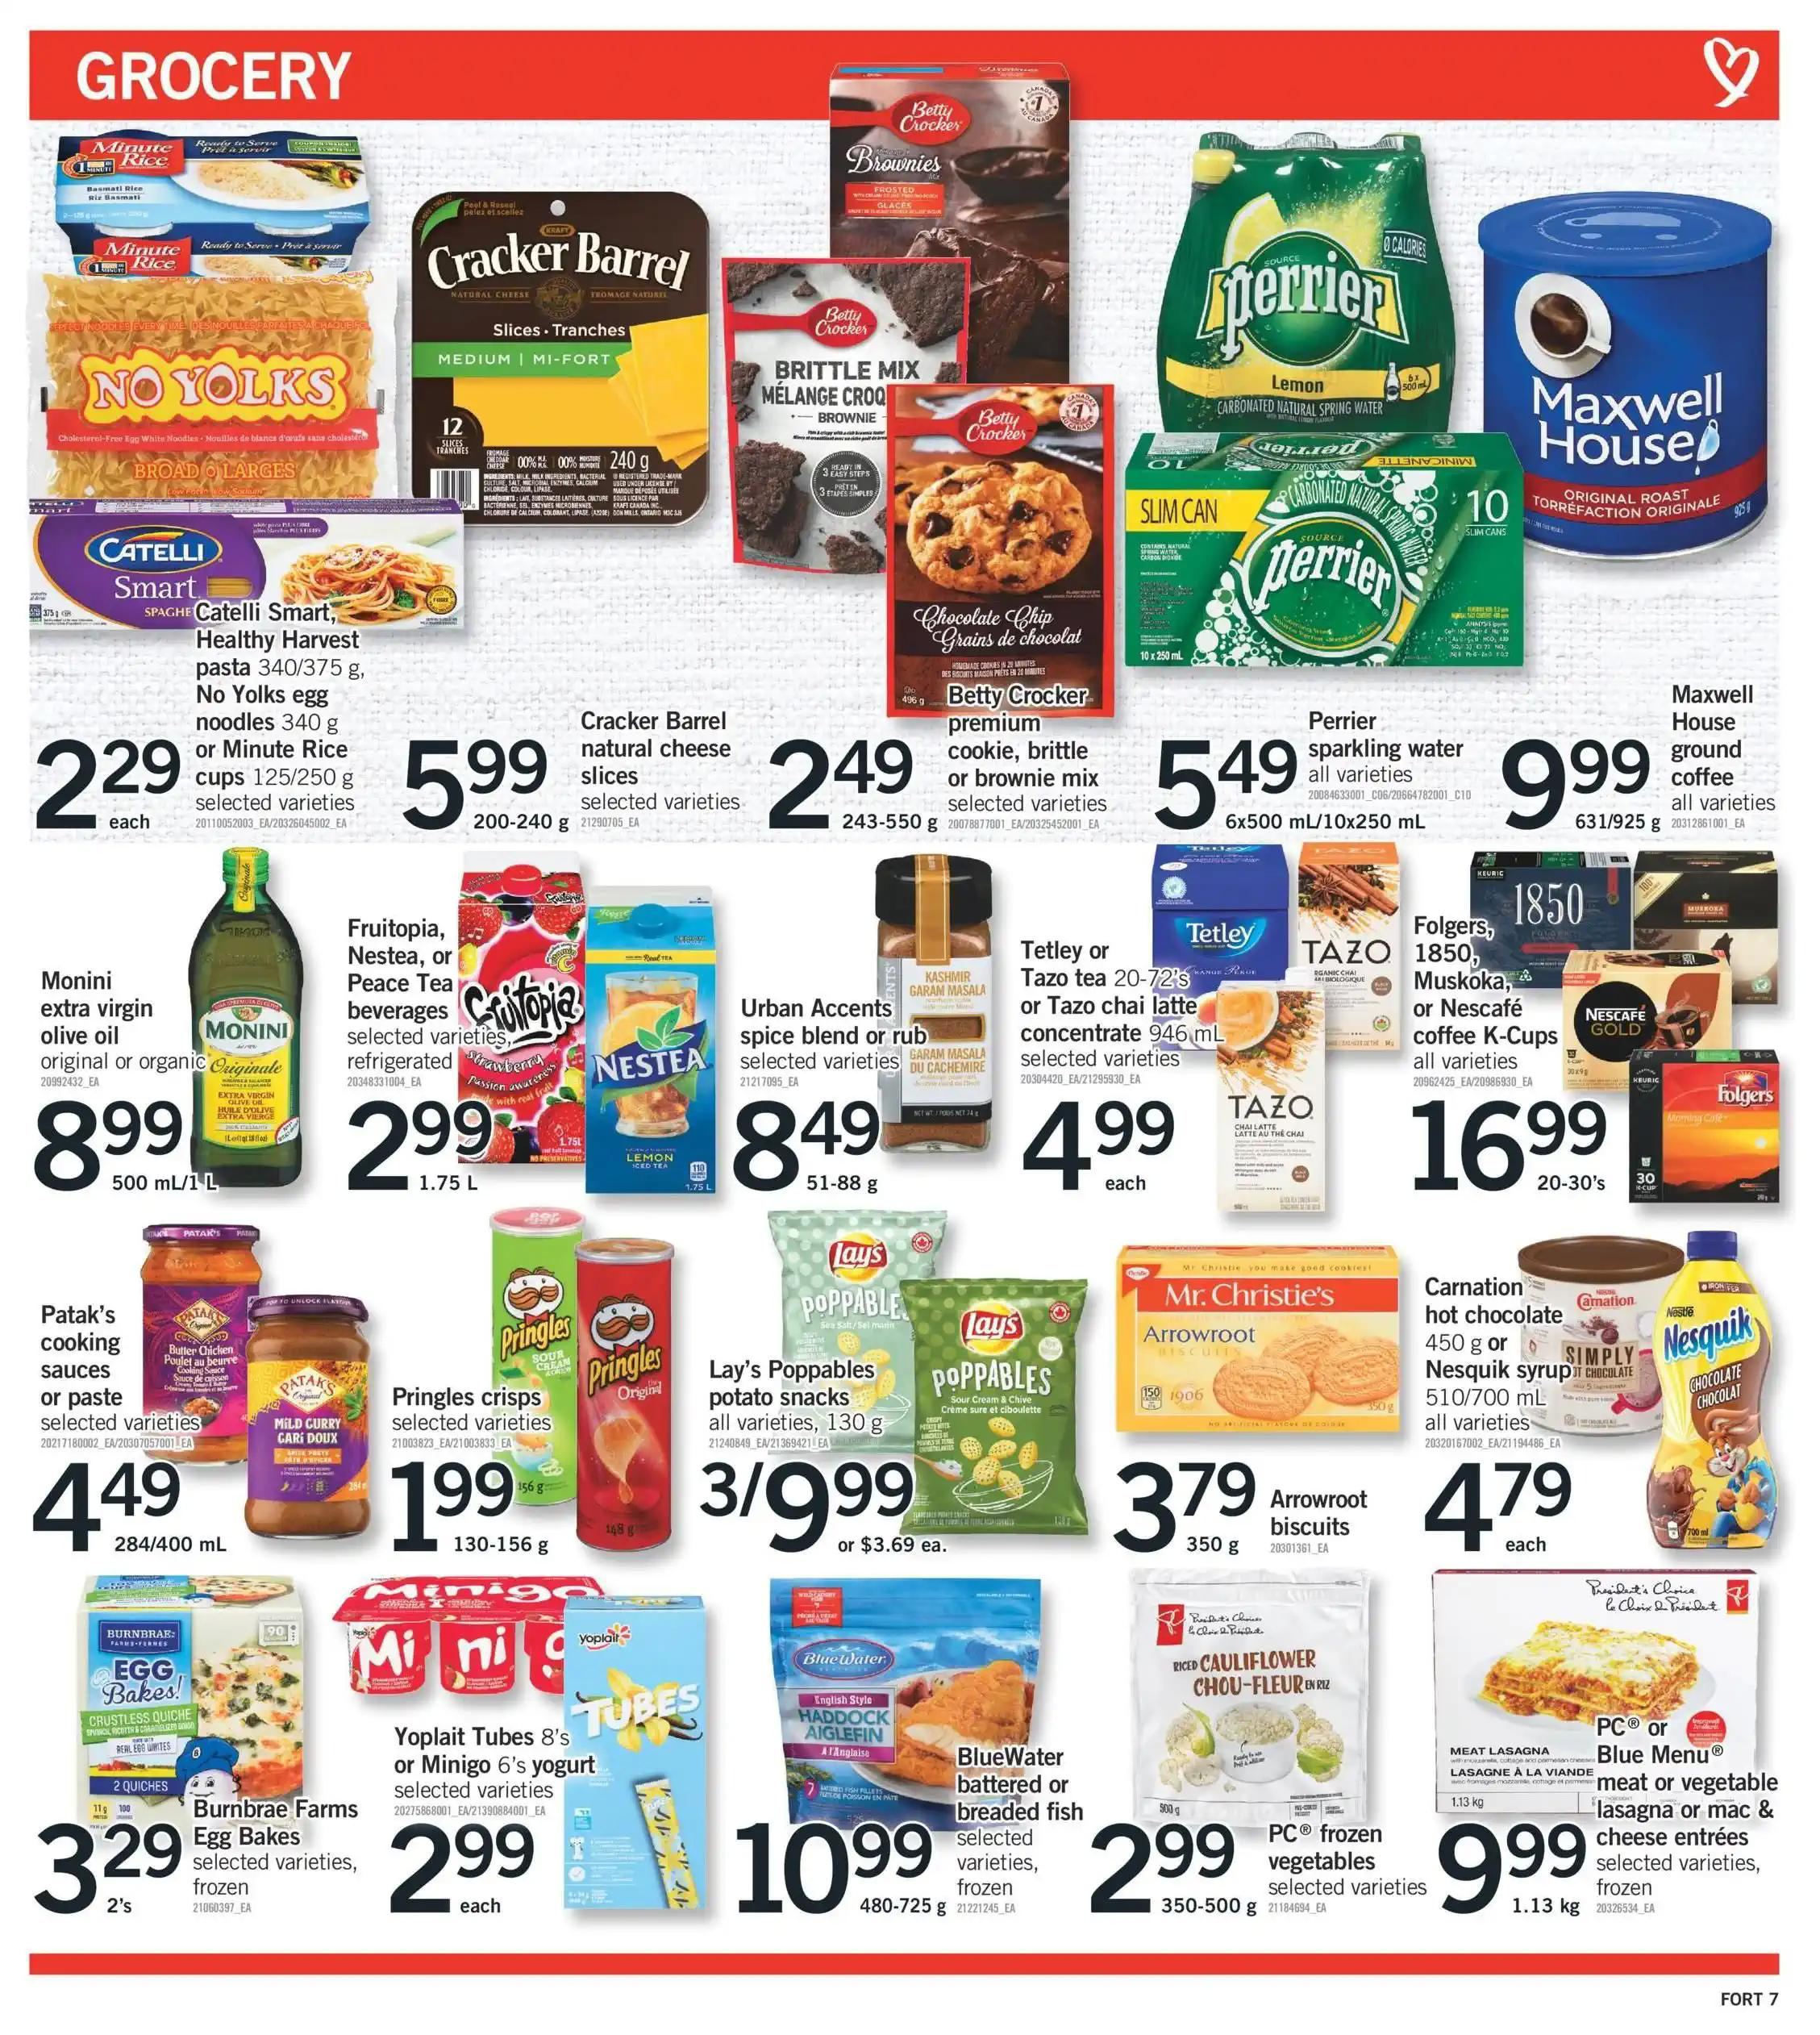 Fortinos - Weekly Flyer Specials - Page 9